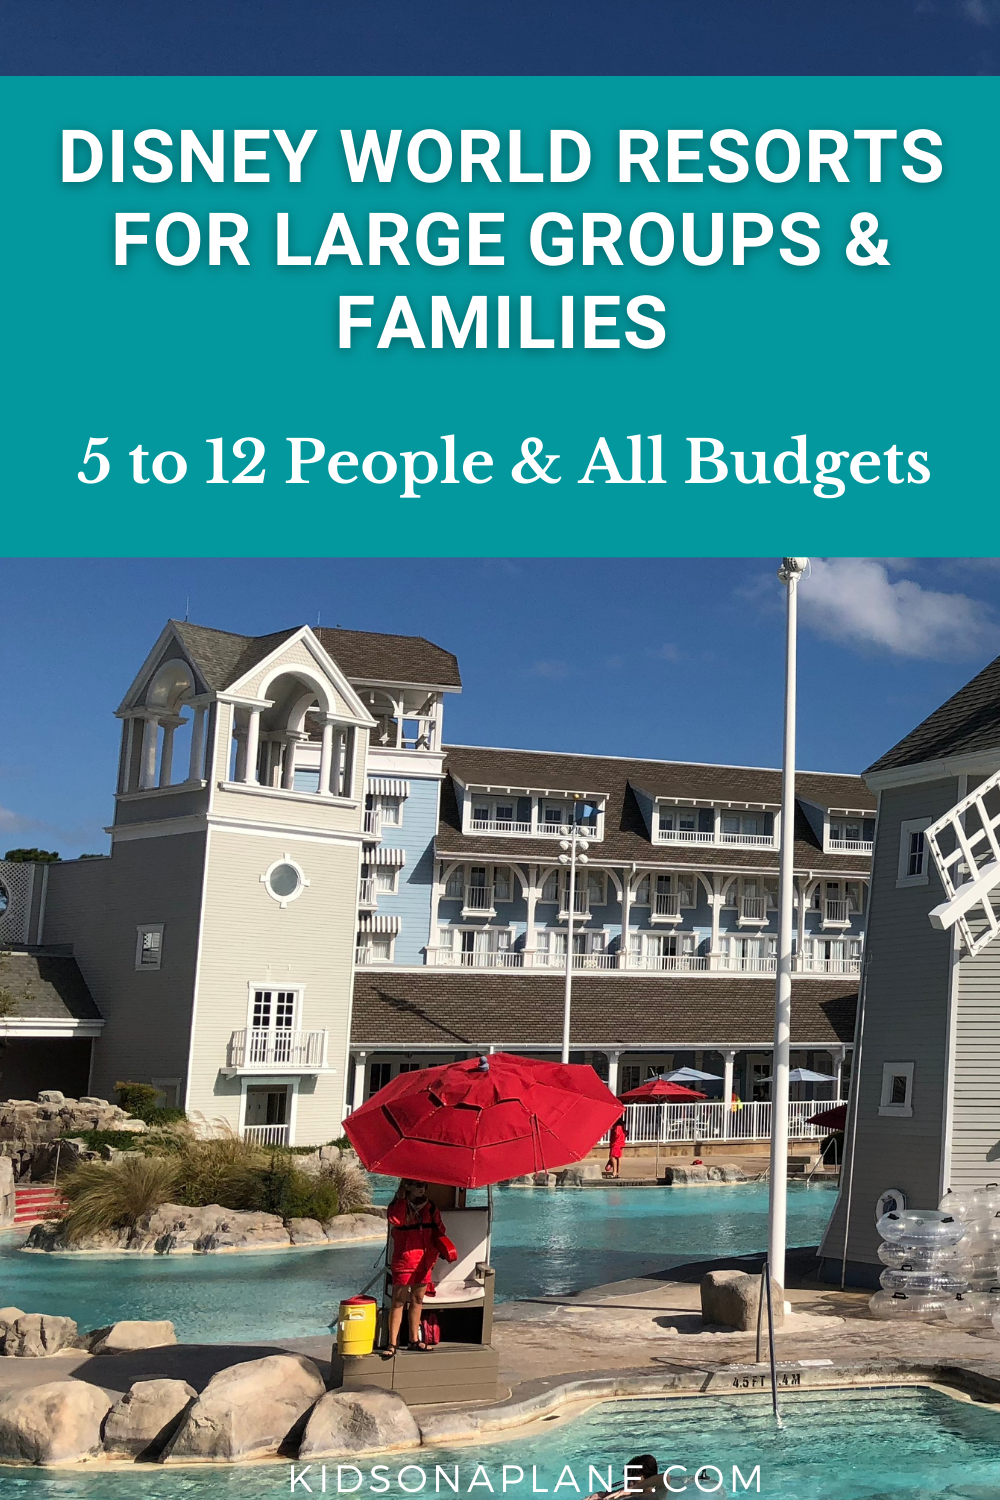 Walt Disney World Resorts for Large Families and Groups - 5 to 12 Guests and All Budgets